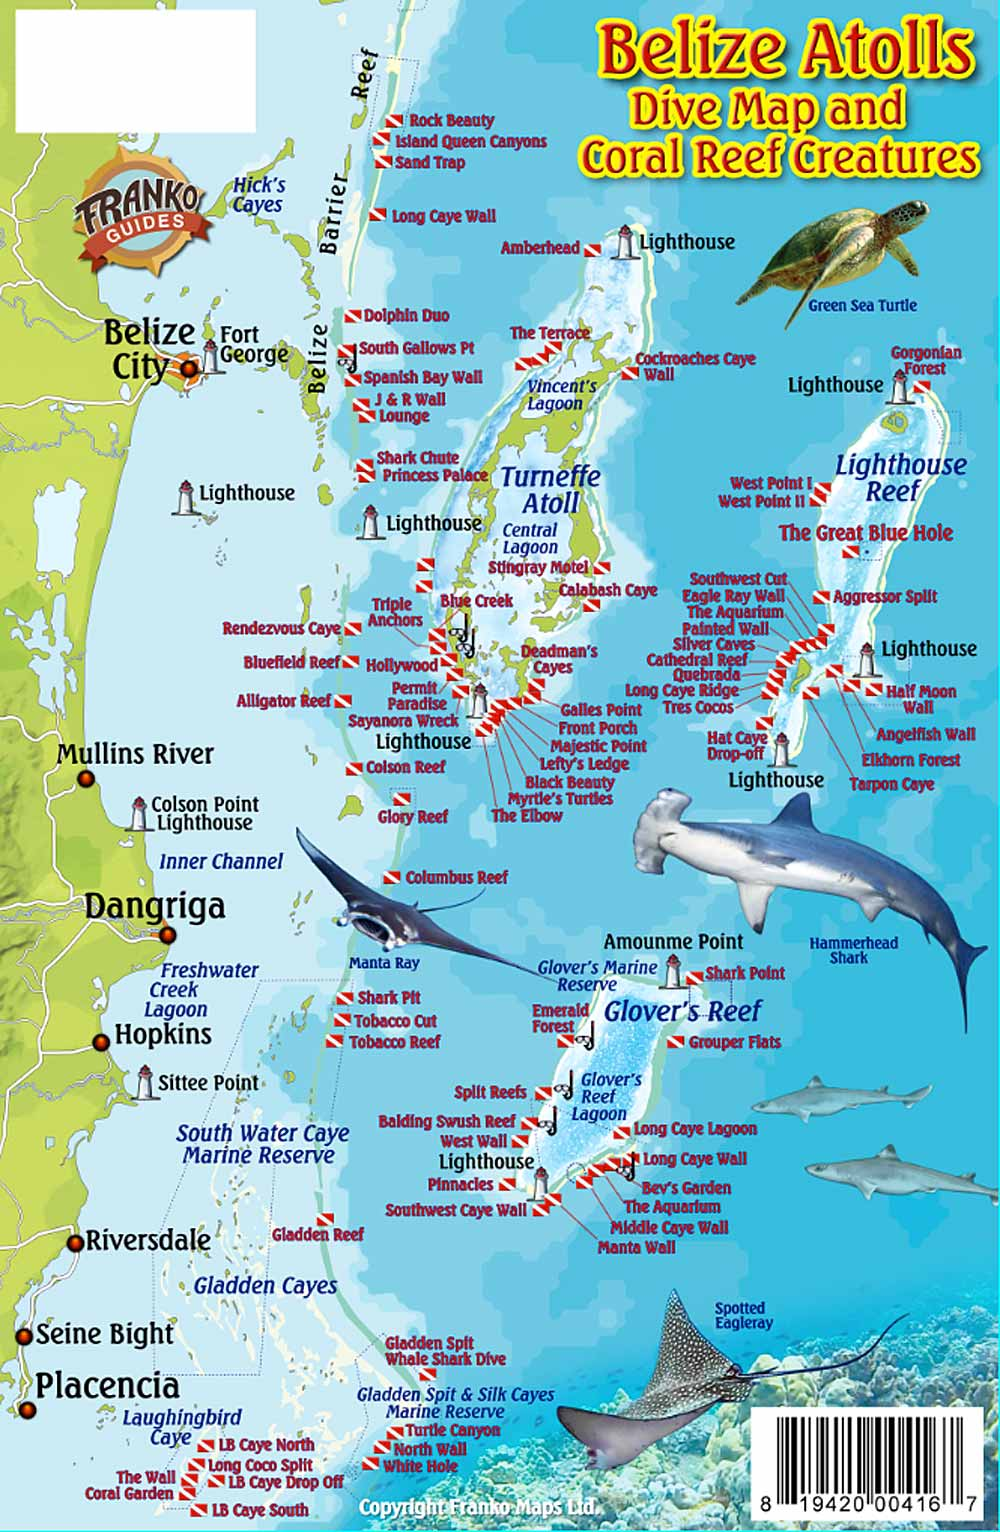 Emerald Forest Reef The Cayes and Atolls, Belize Maps, Dive/Fish ID Cards